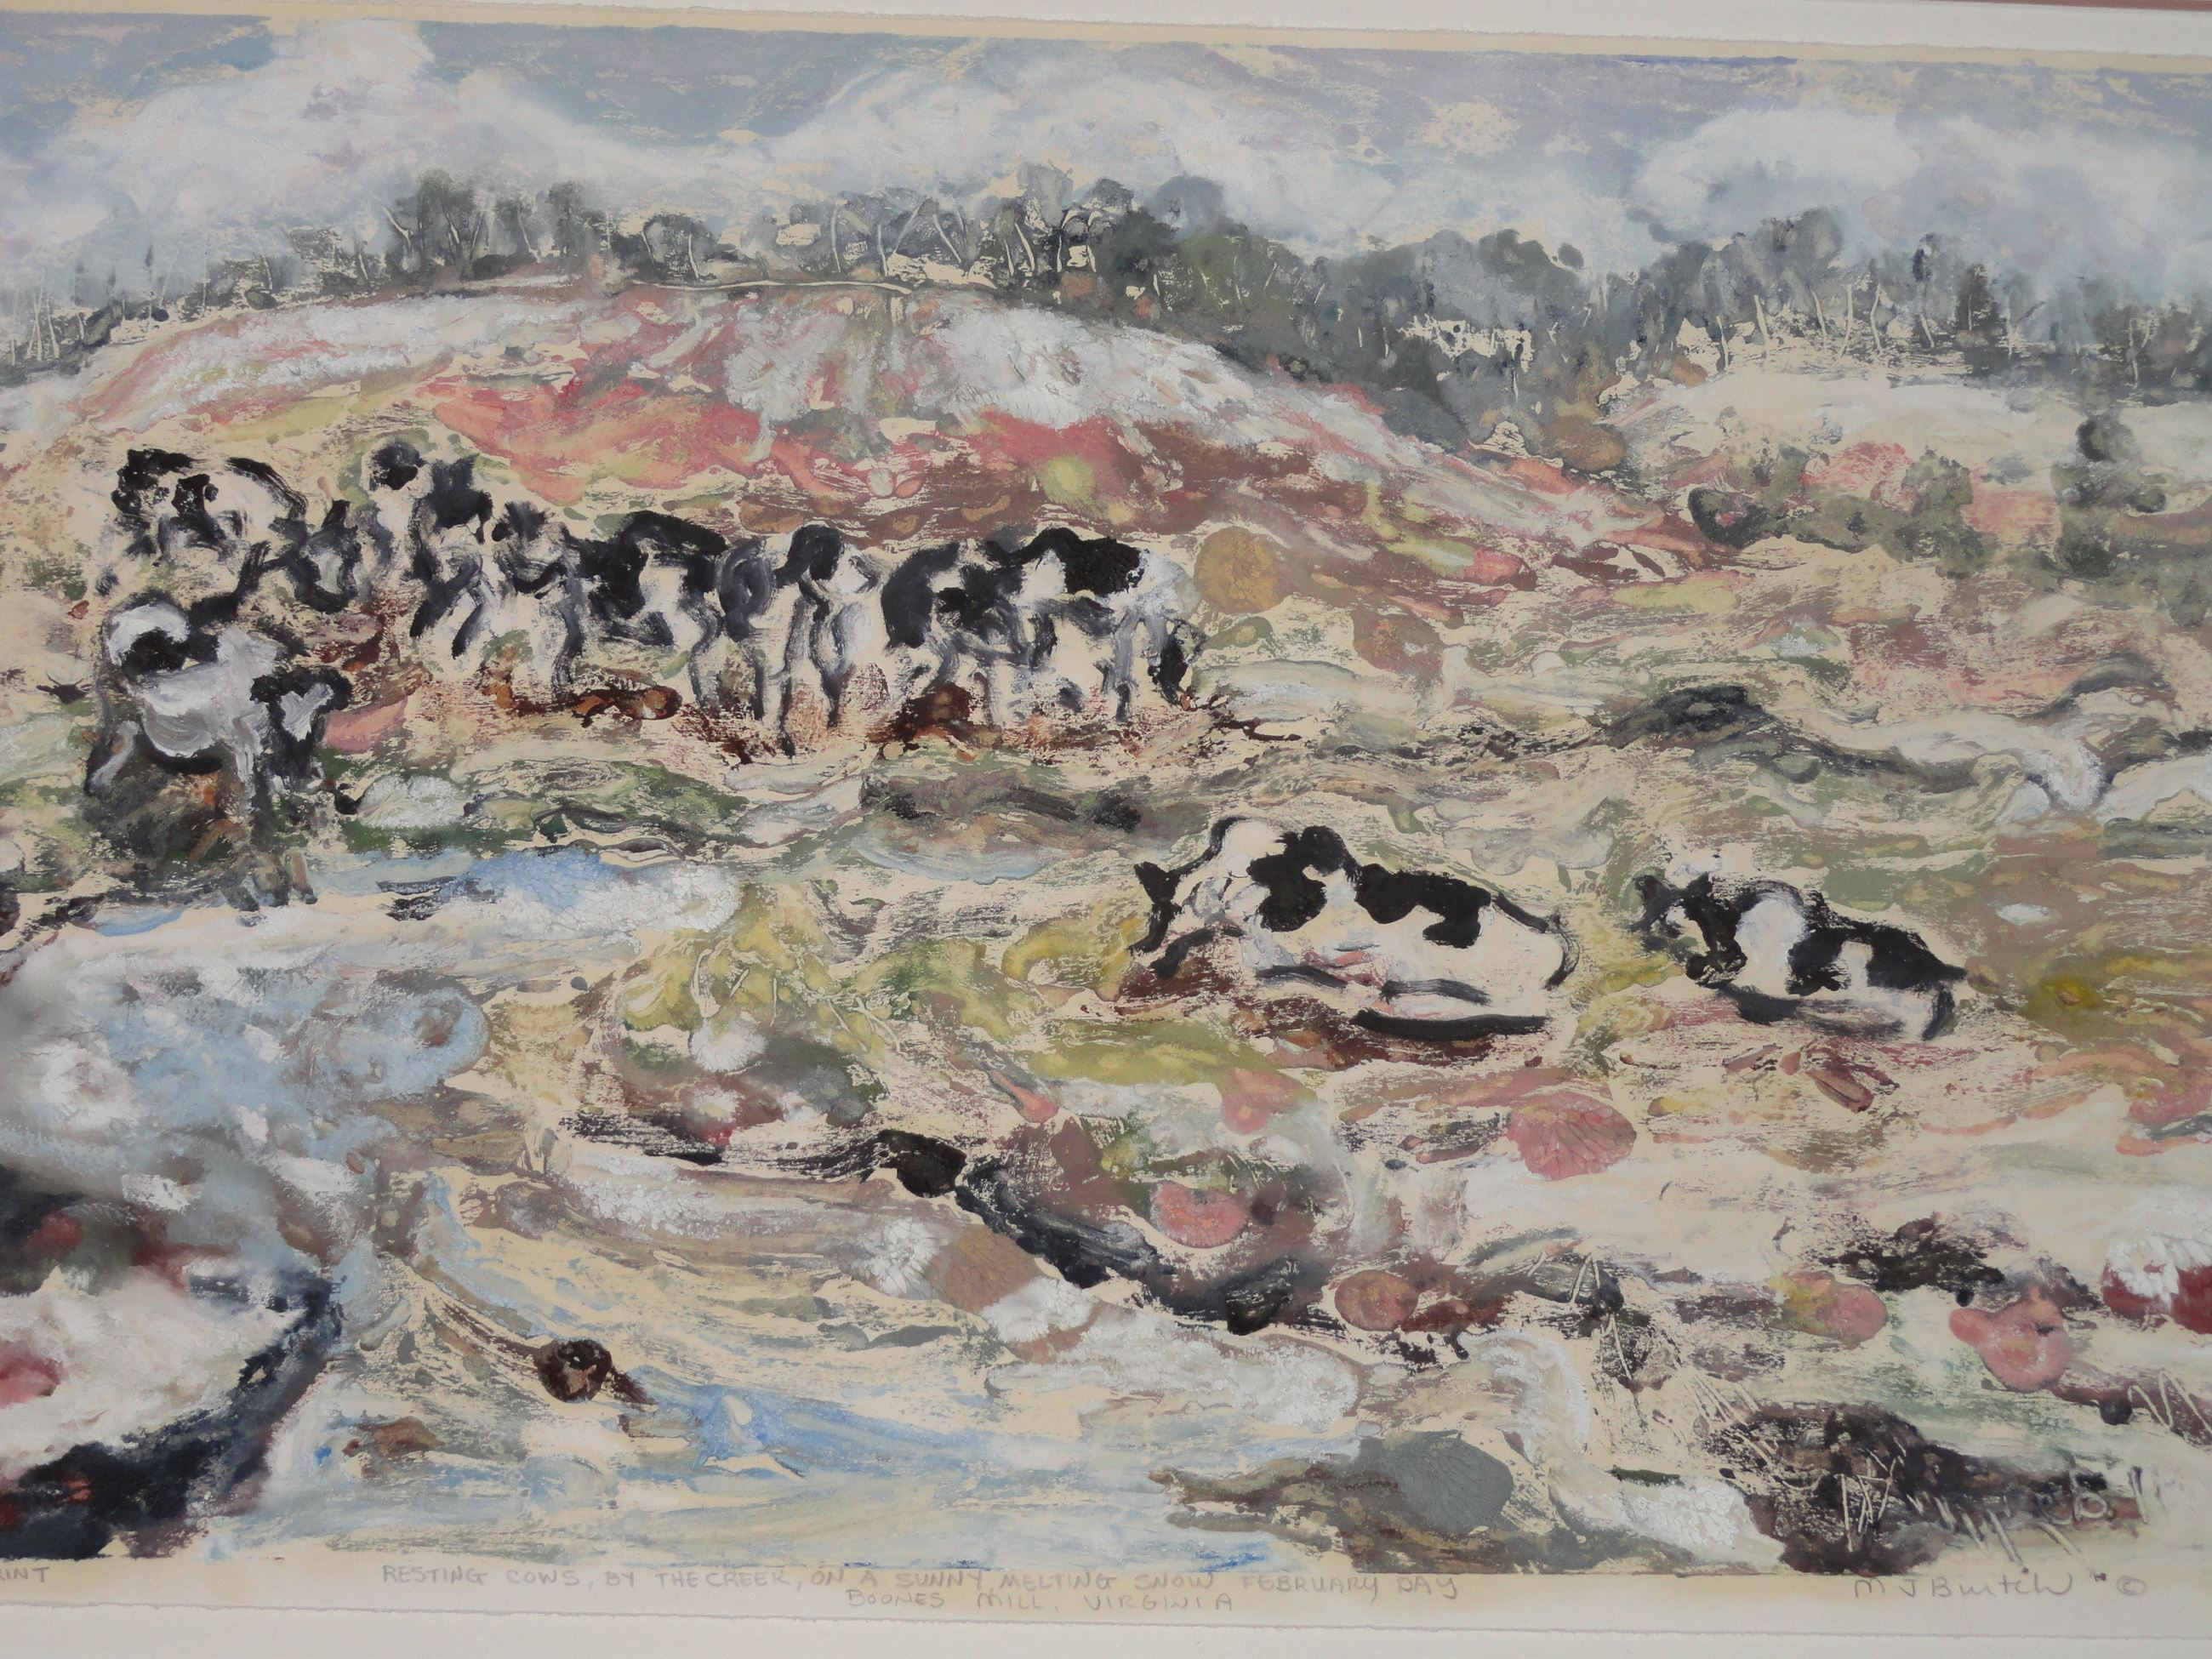 Resting Cows by Burtch